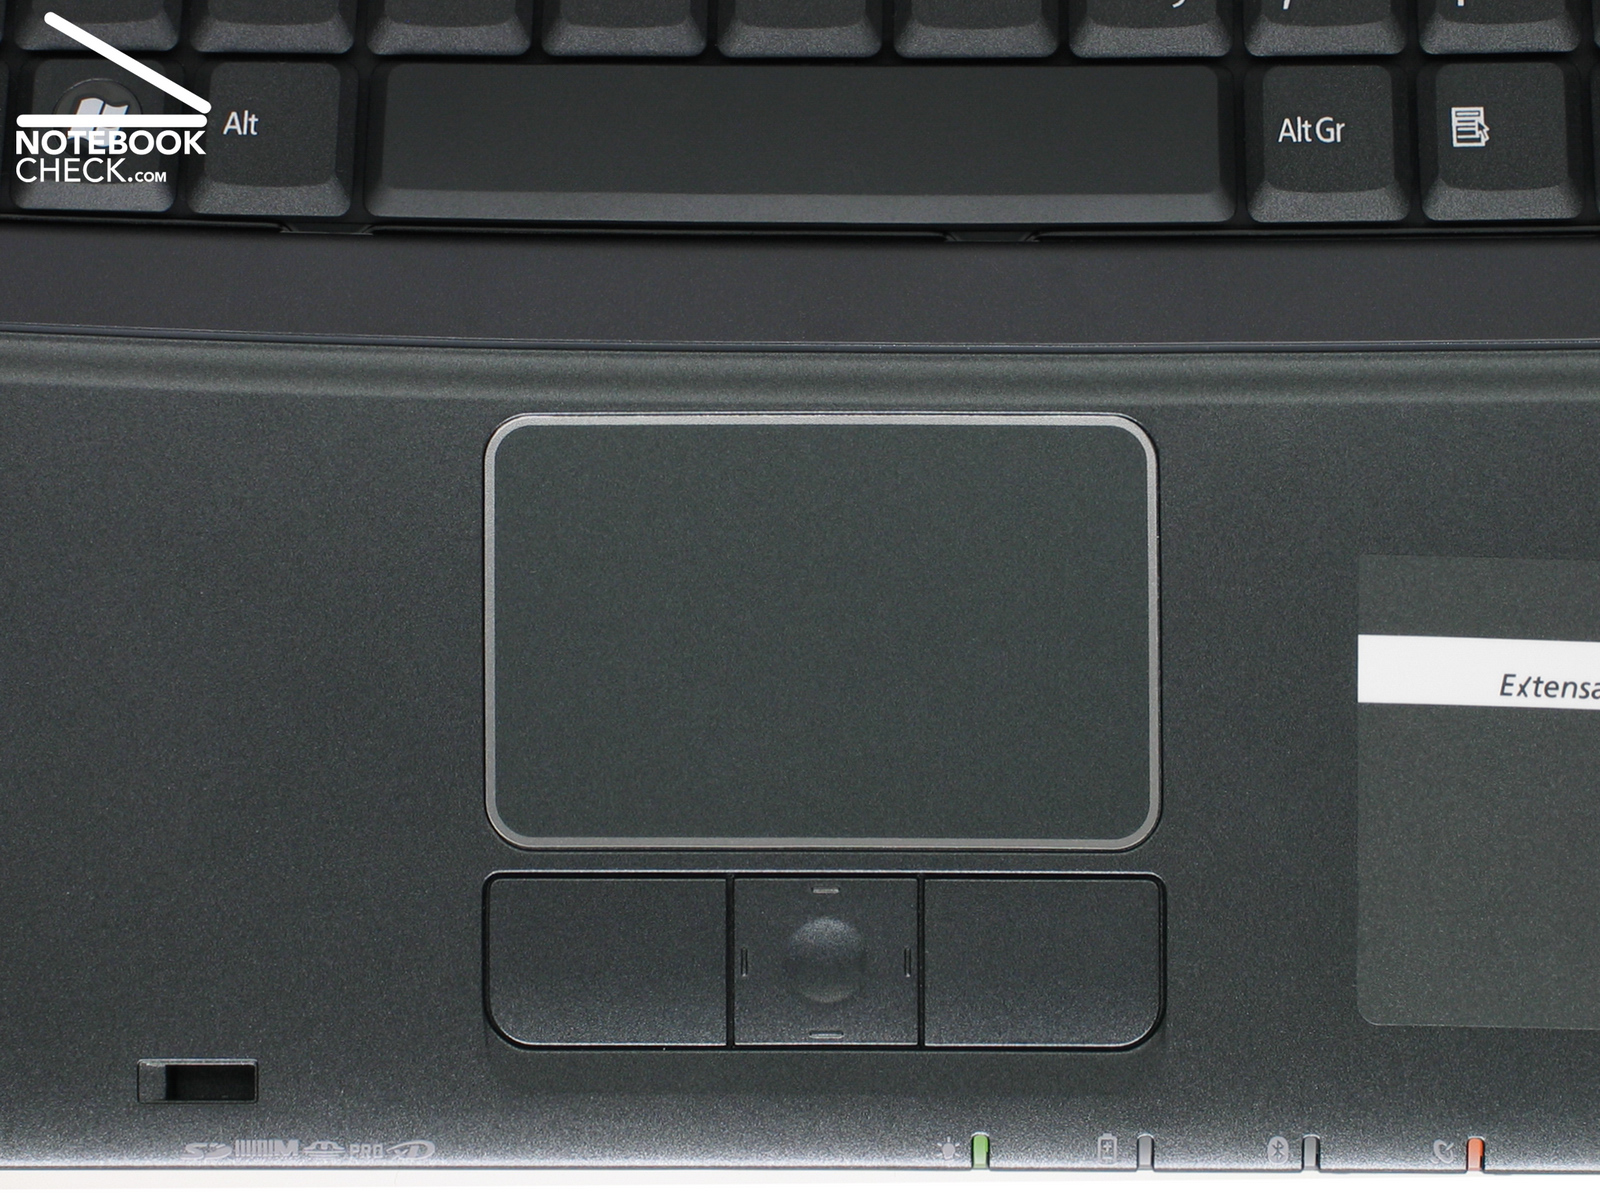 ACER EXTENSA 5220 NOTEBOOK TEXAS INSTRUMENTS CARD READER WINDOWS 10 DRIVER DOWNLOAD